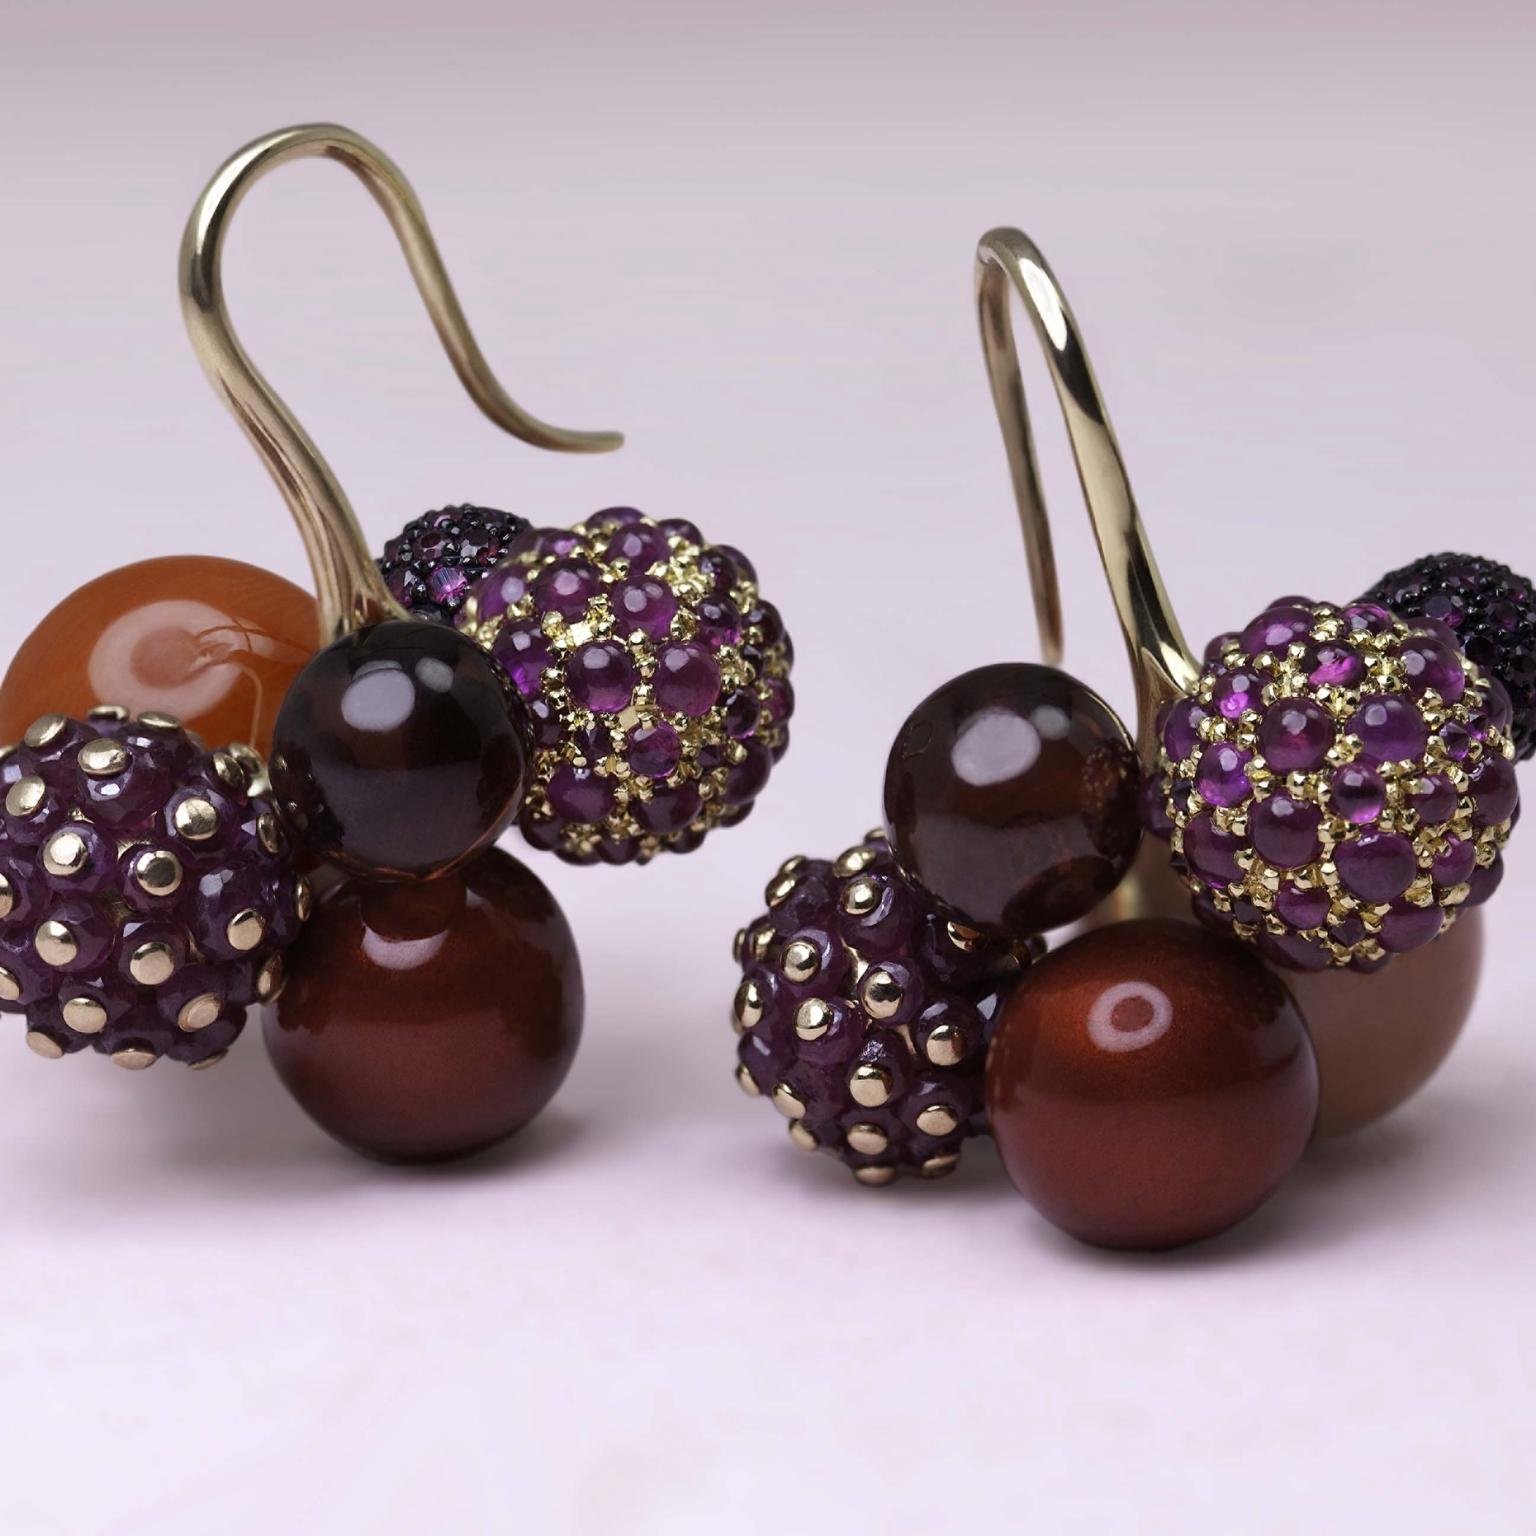 Berry Earrings from Ming